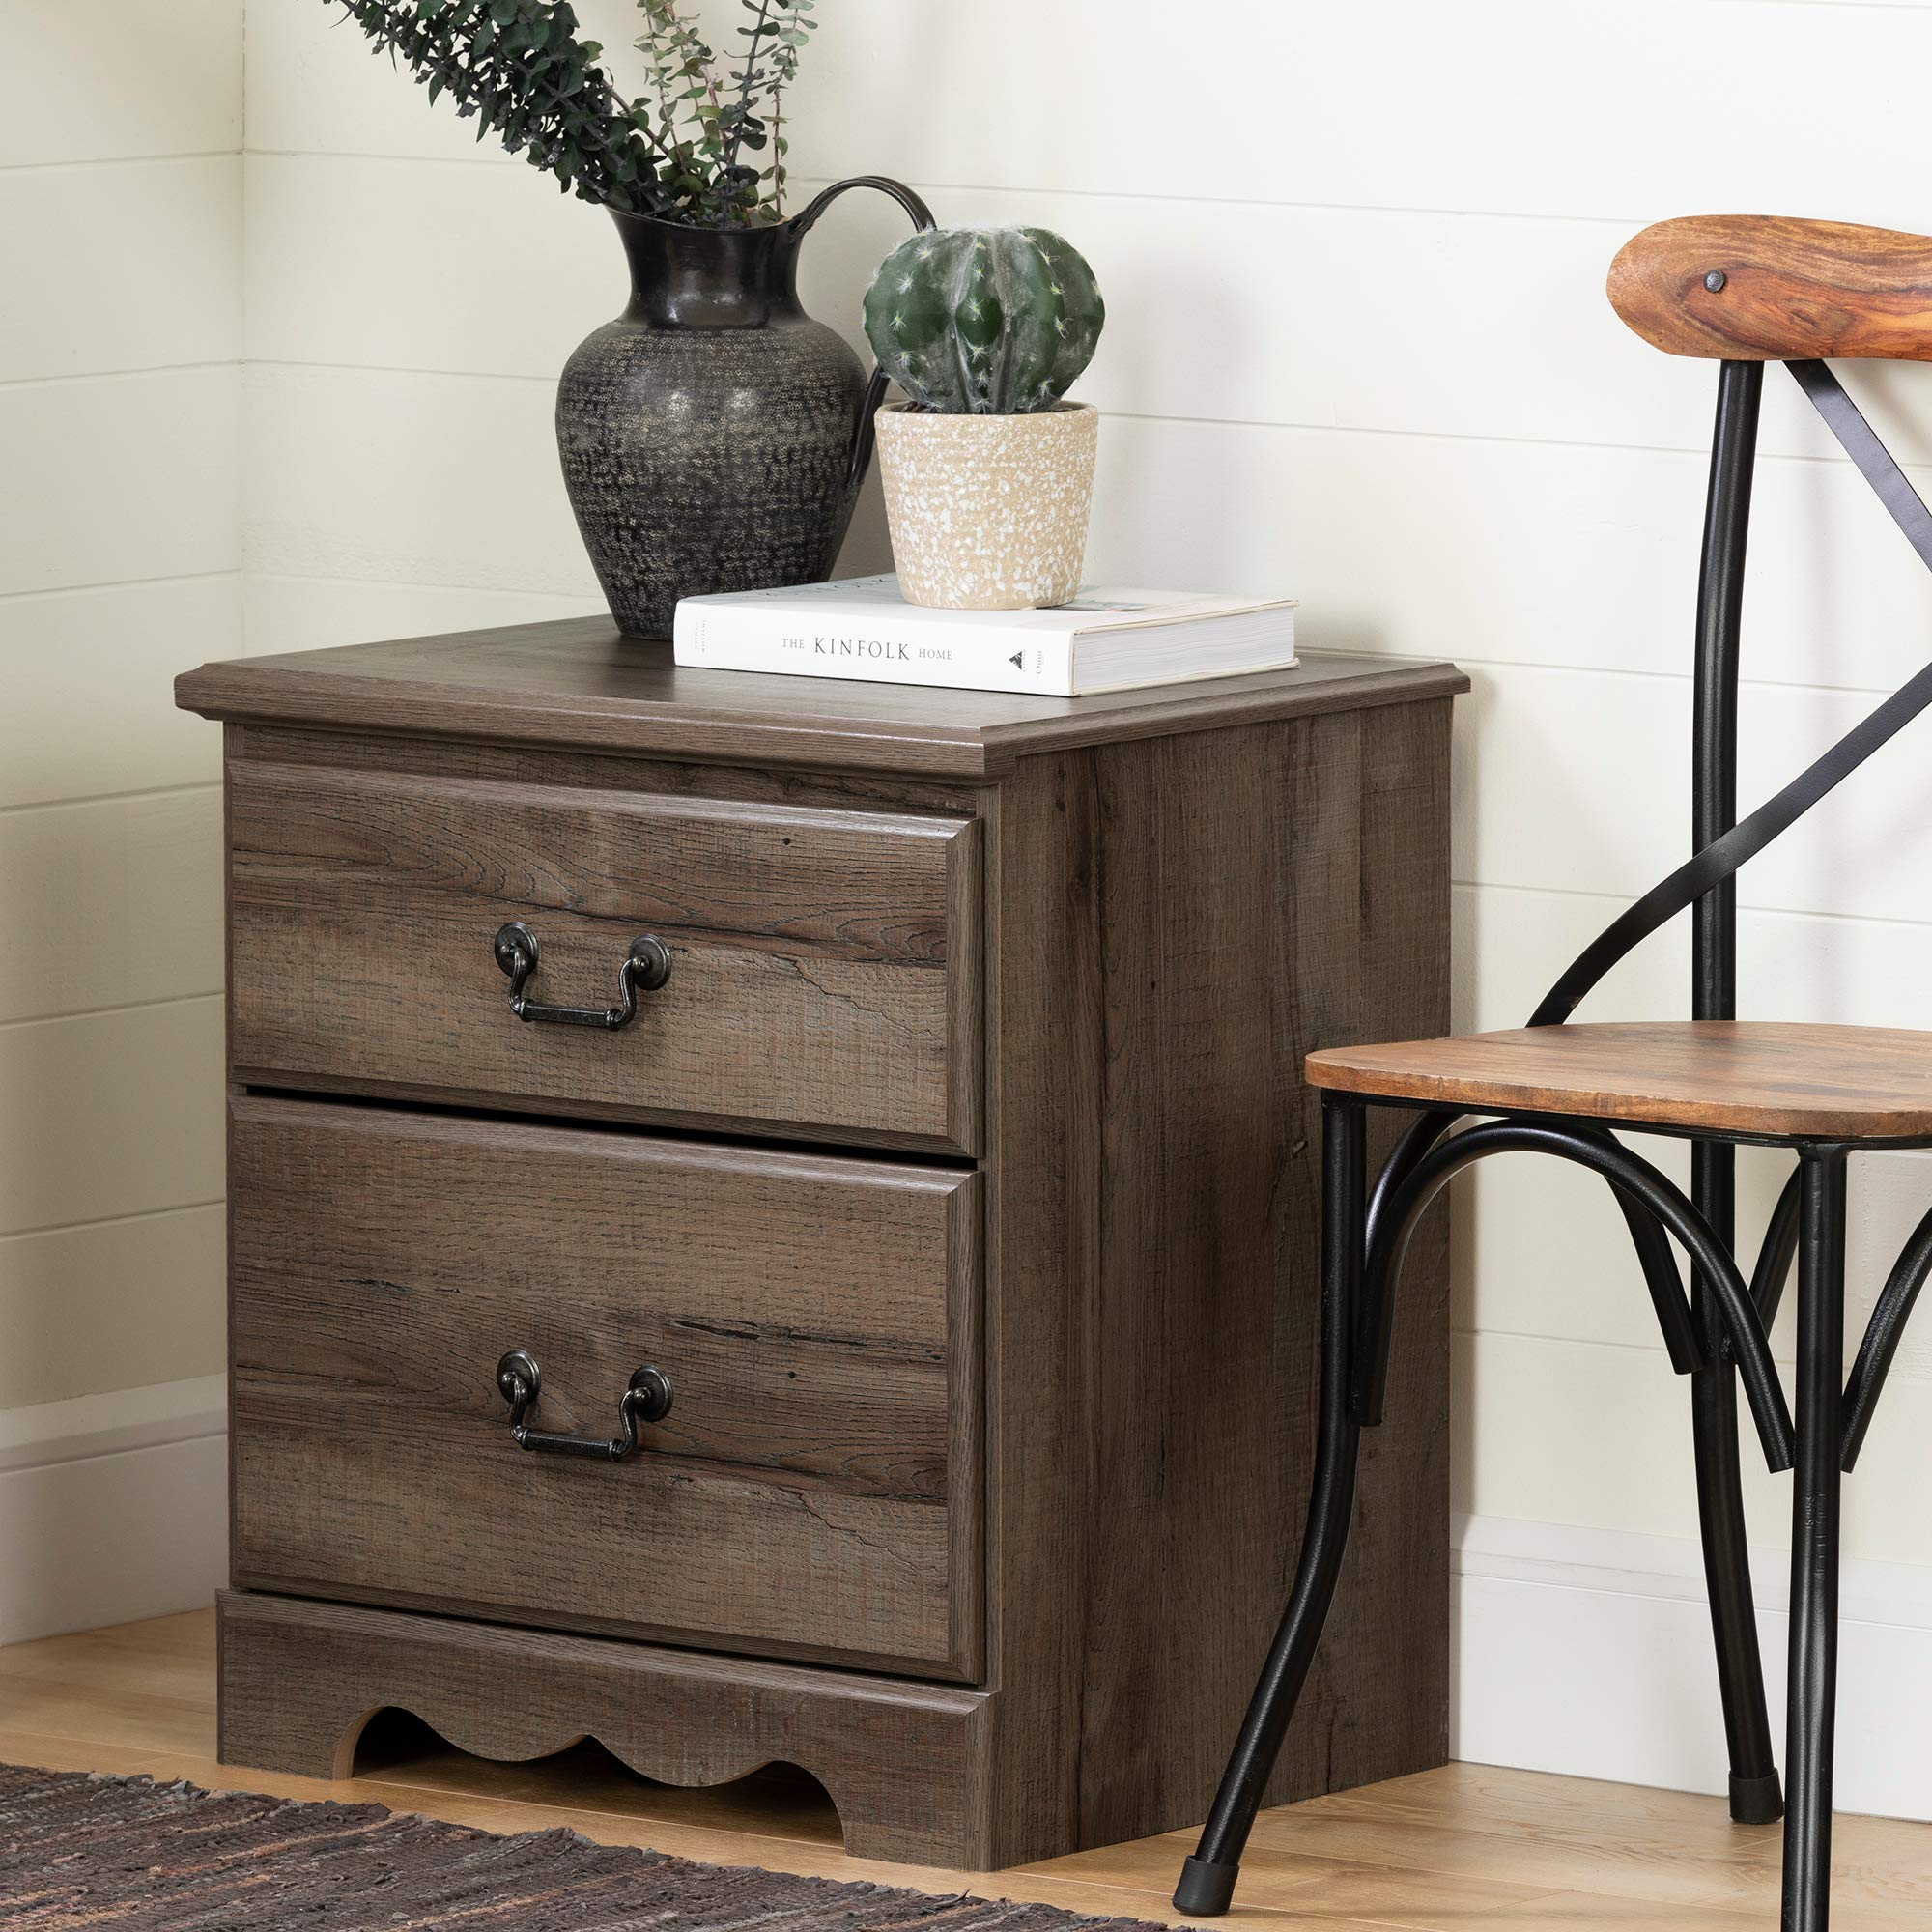 South Shore 11918 Prairie 2-Drawer Nightstand, Fall Oak by South Shore